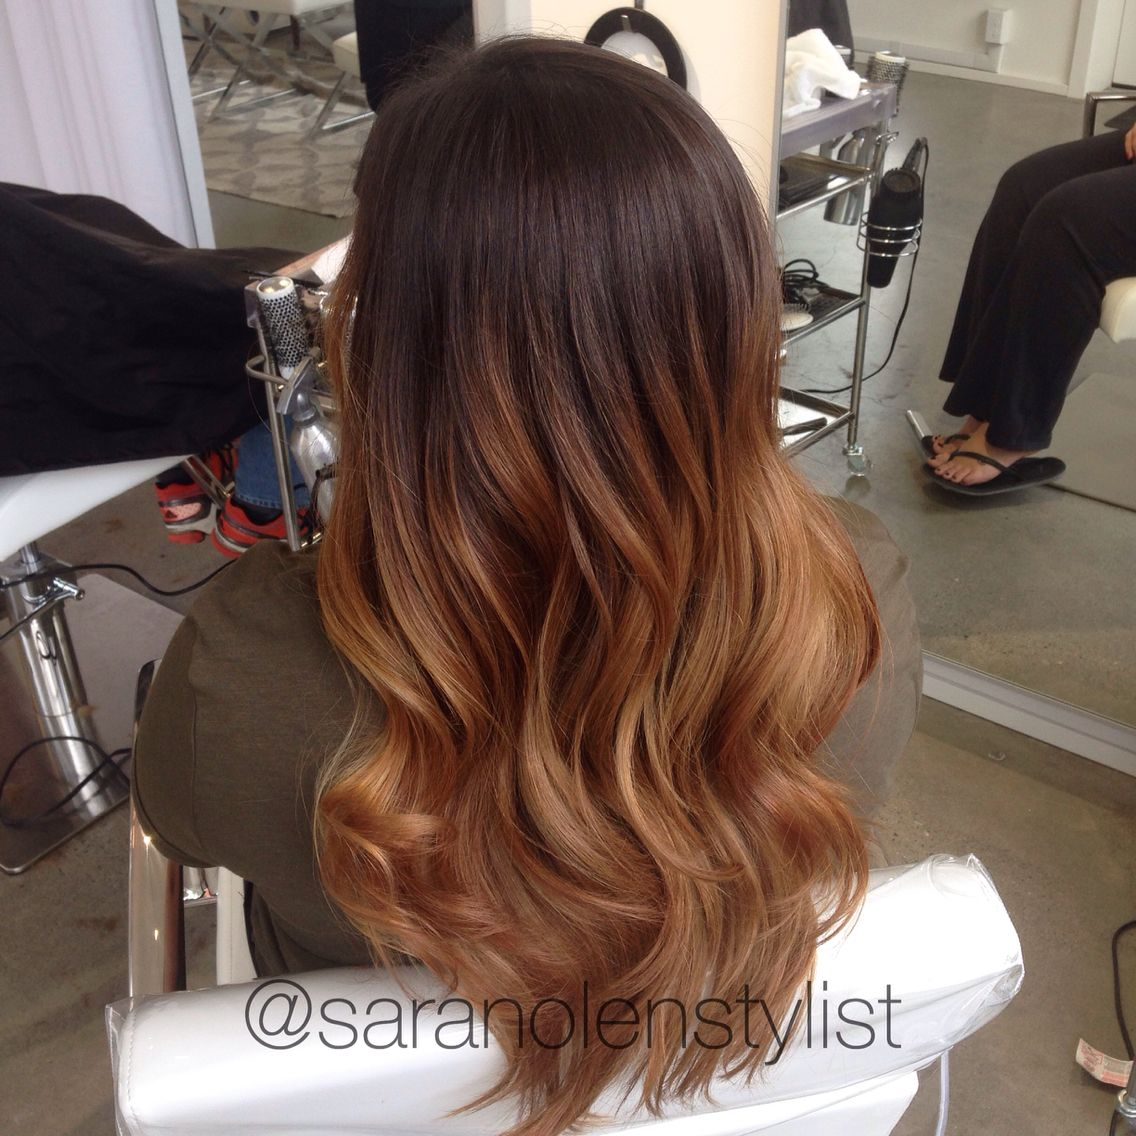 Fall Hair Color Warm Chestnut Brown Balayage Ombr Done By Sara